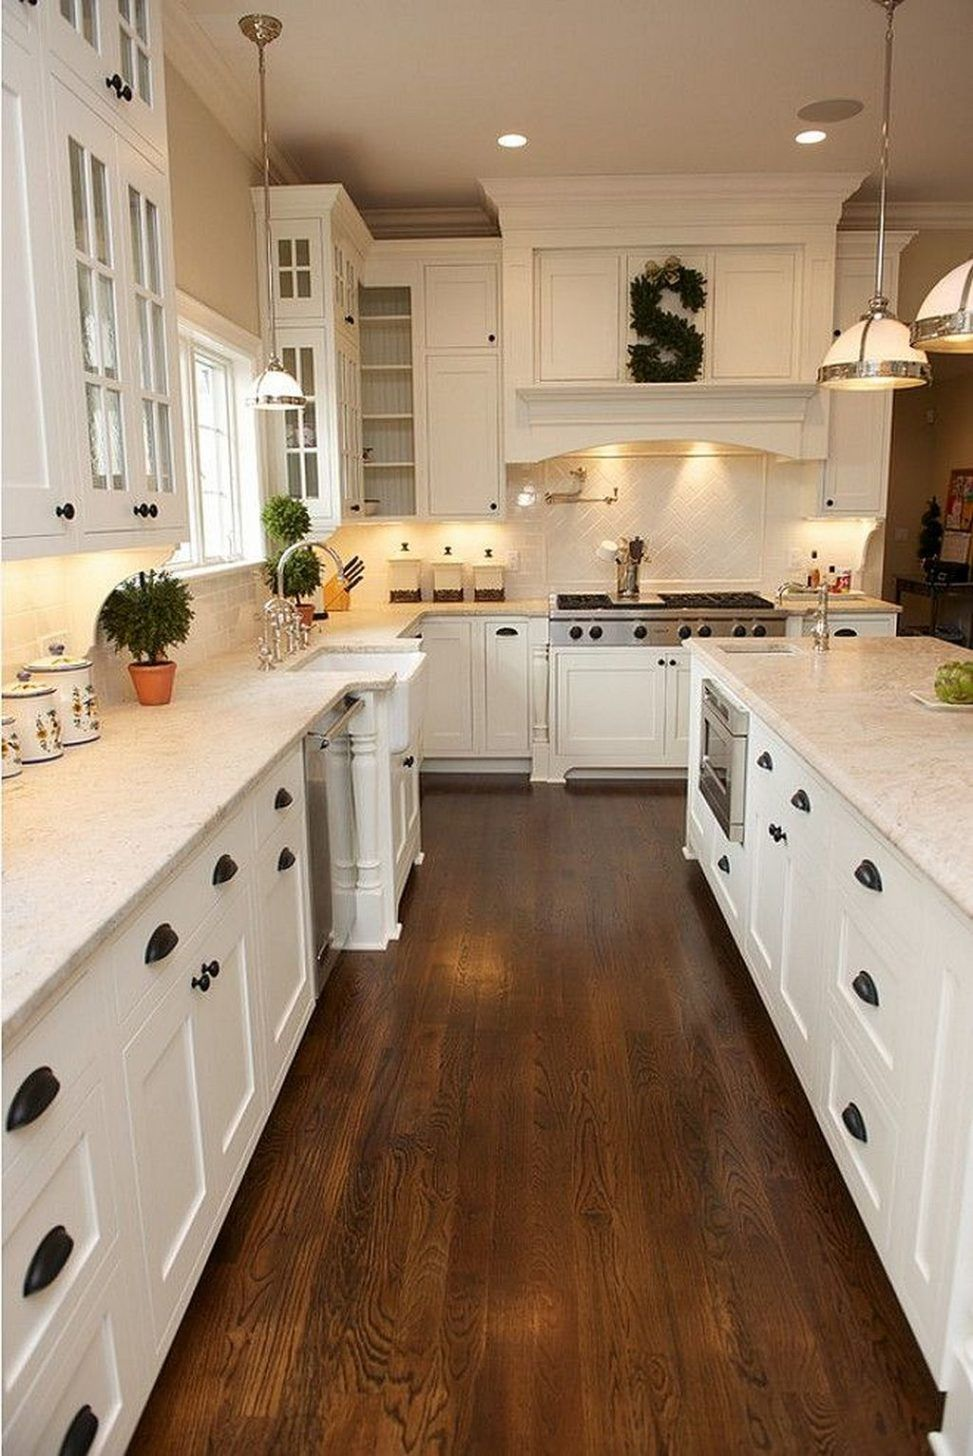 incredible kitchen remodel | Incredible White Kitchen Design Ideas (30) | House | White ...